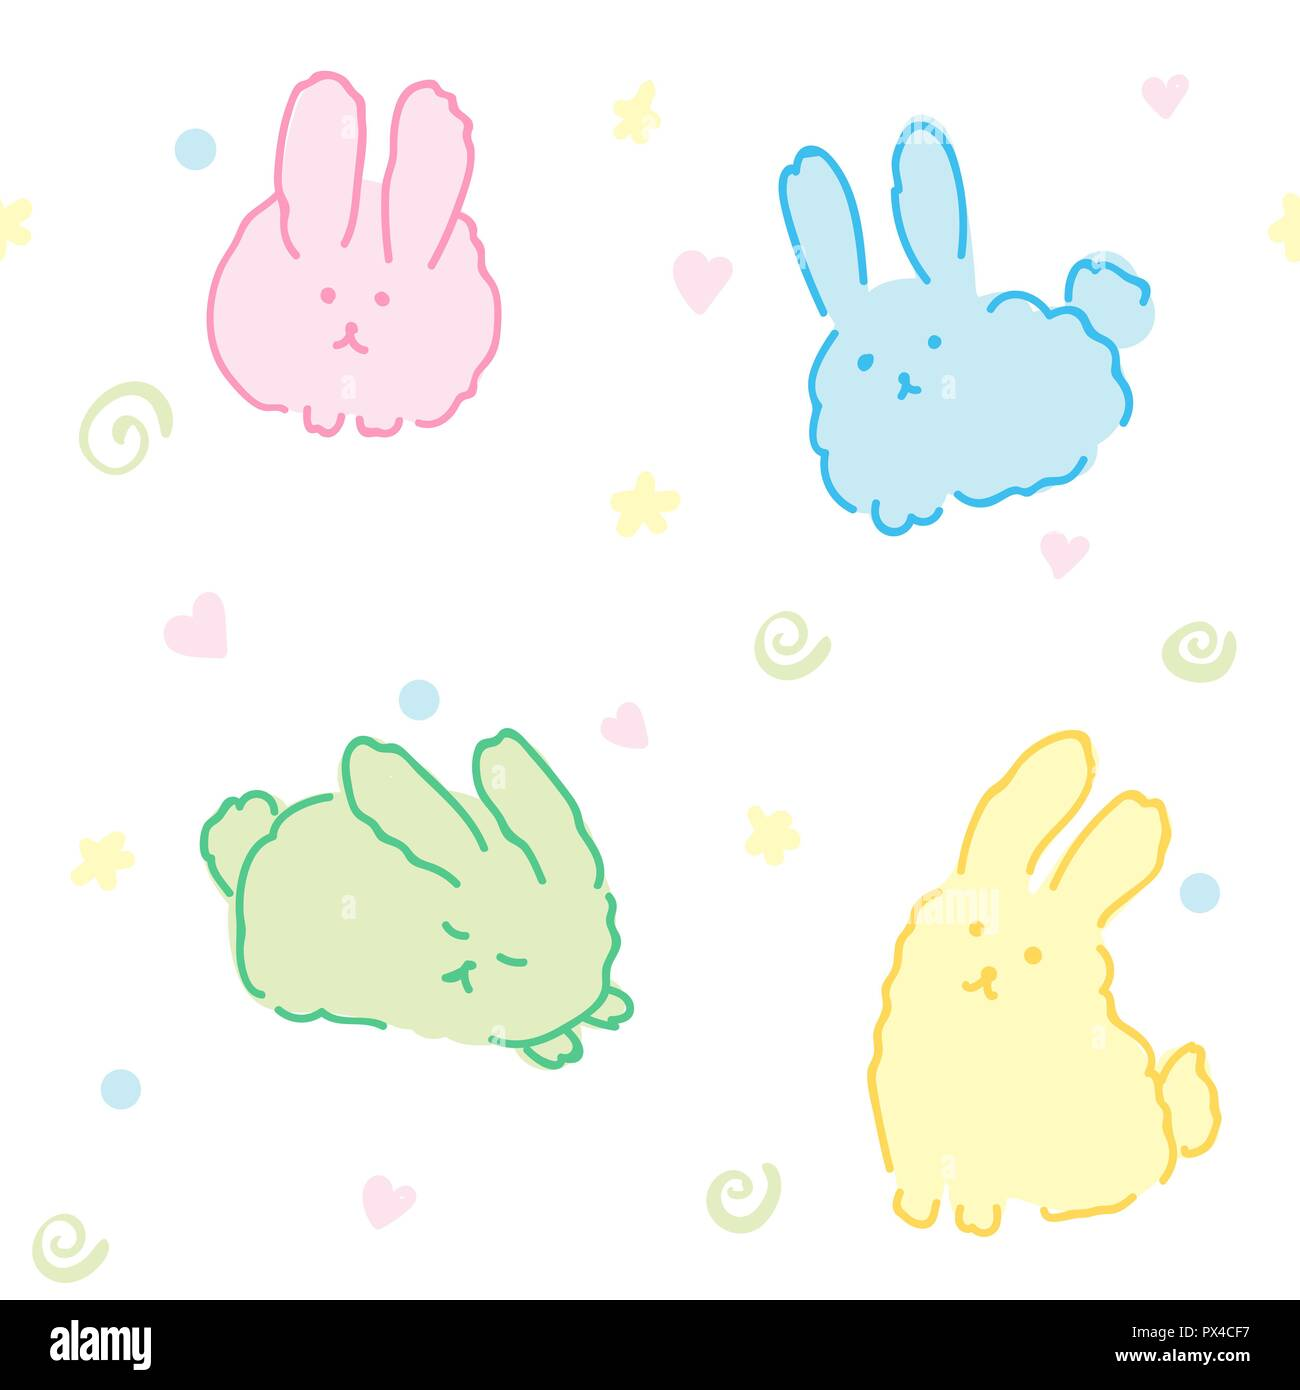 Image of: Cat Fluffy Bunnies Wallpaper Seamless Pattern Cute Rabbits Kawaii Animals In White Alamy Fluffy Bunnies Wallpaper Seamless Pattern Cute Rabbits Kawaii